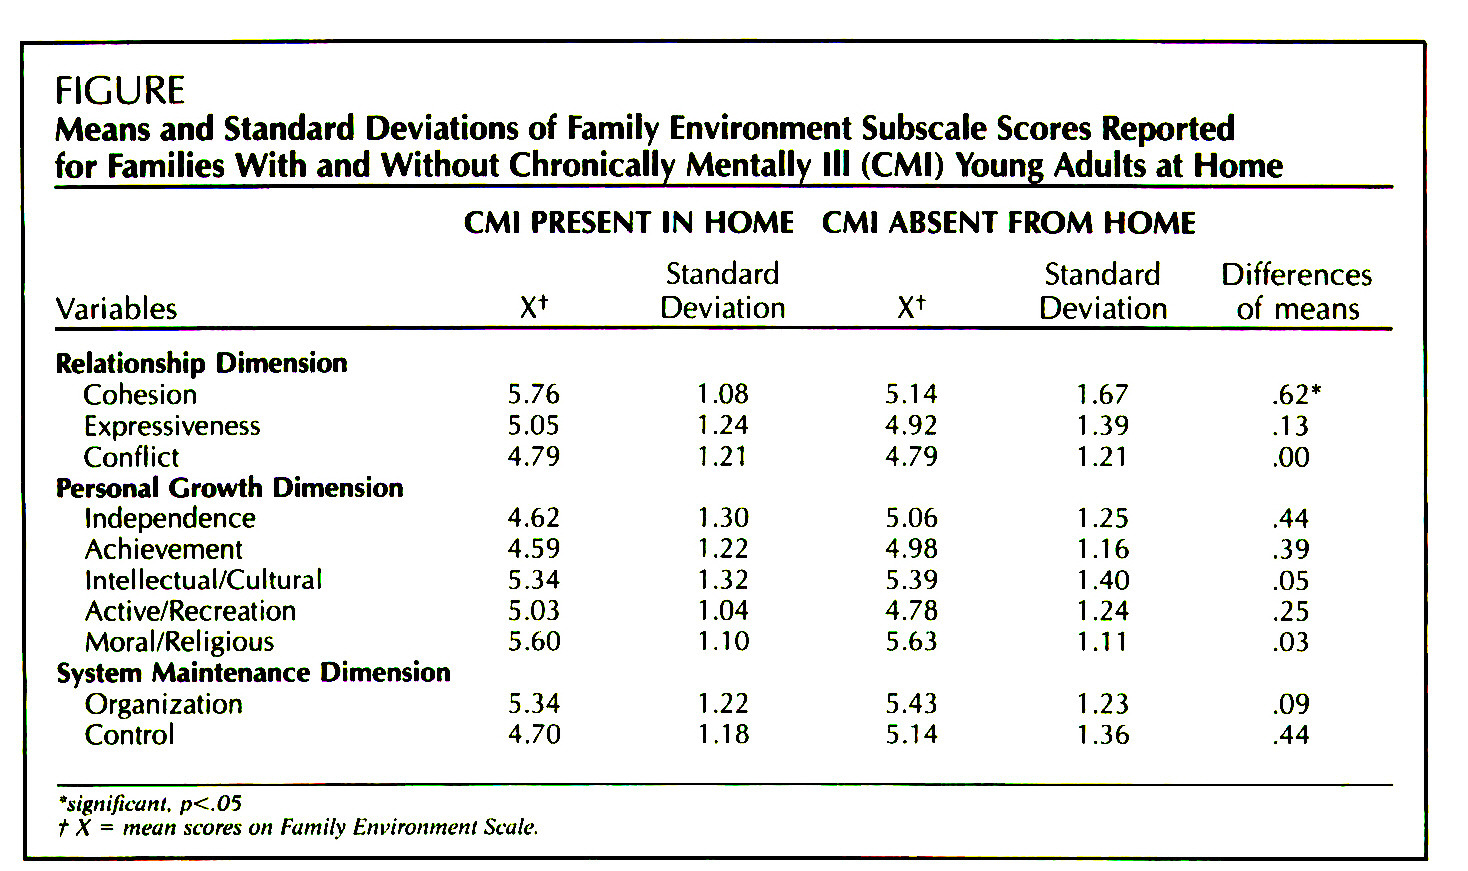 FIGUREMeans and Standard Deviations of Family Environment Subscale Scores  Reported for Families With and Without Chronically